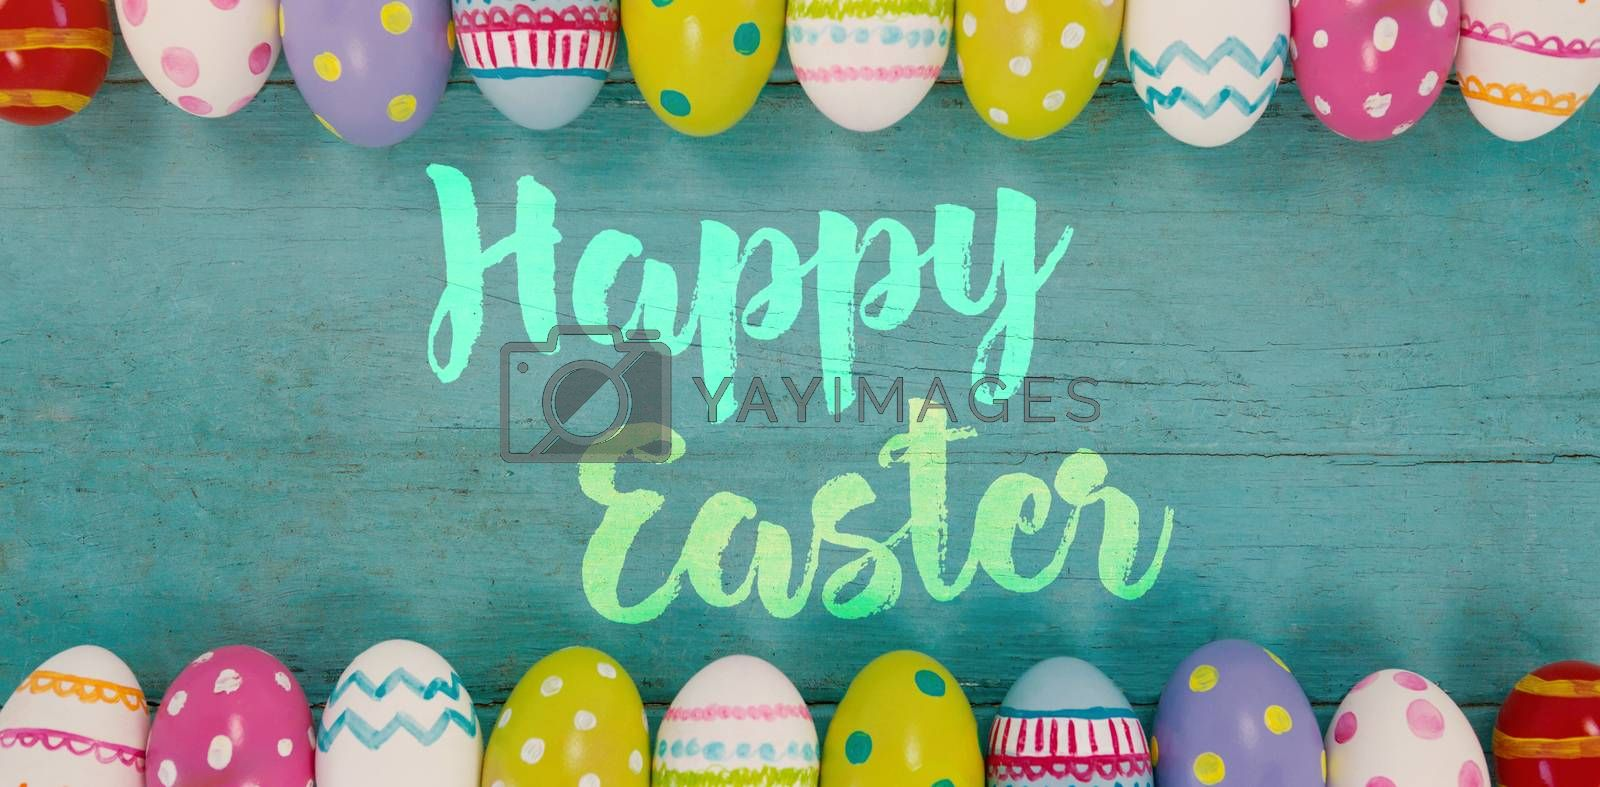 Happy easter logo against various easter eggs arranged on wooden surface